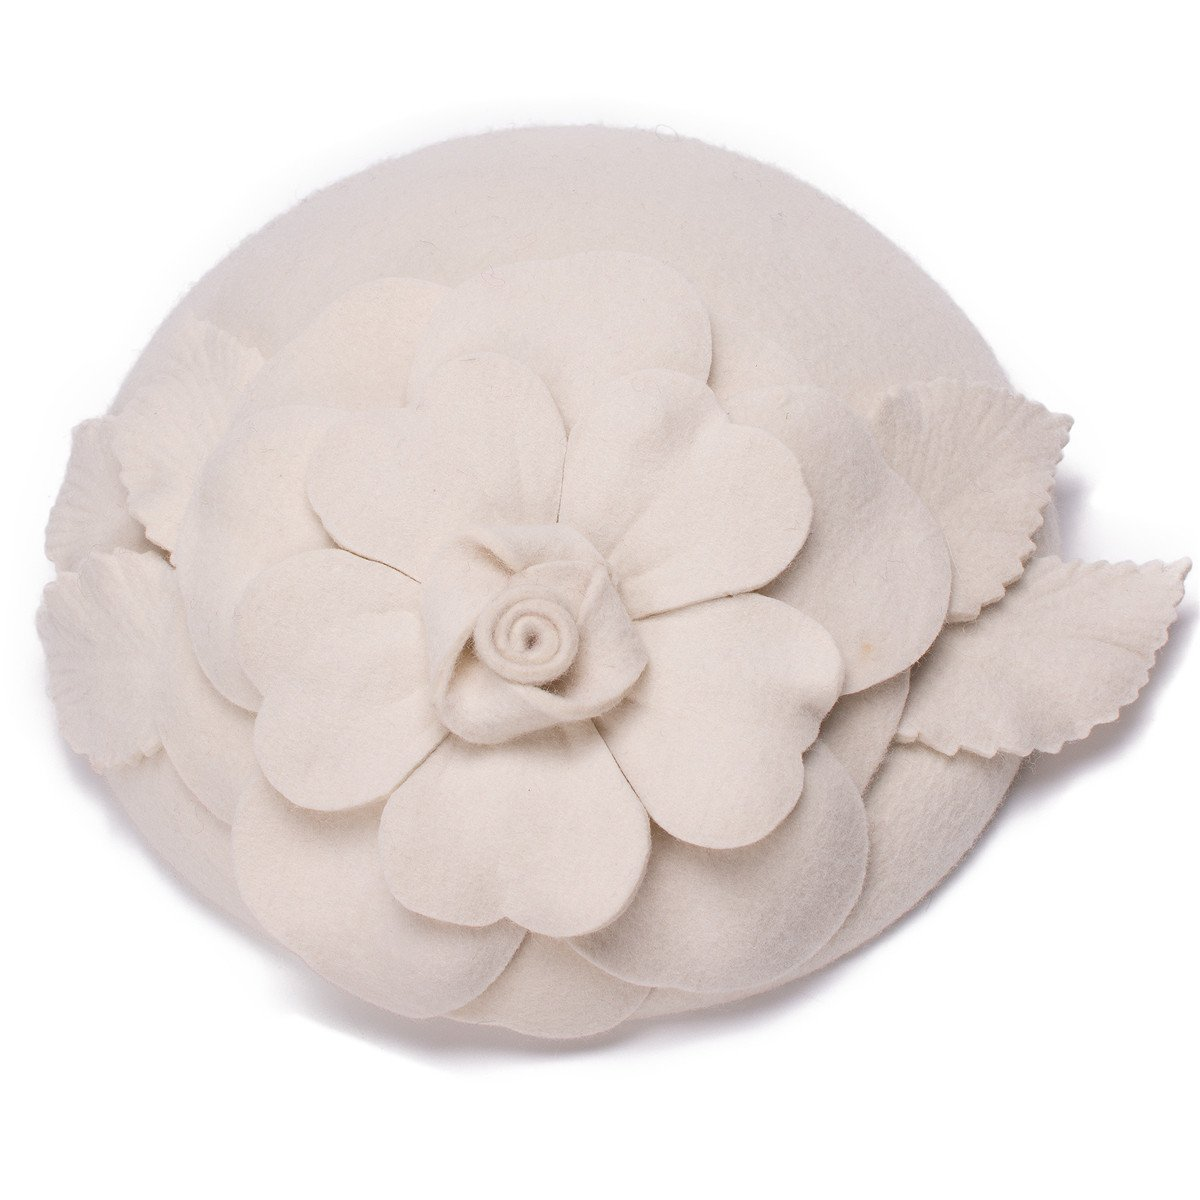 Flower Womens Dress Fascinator Wool Pillbox Hat Party Wedding A083 (Ivory)